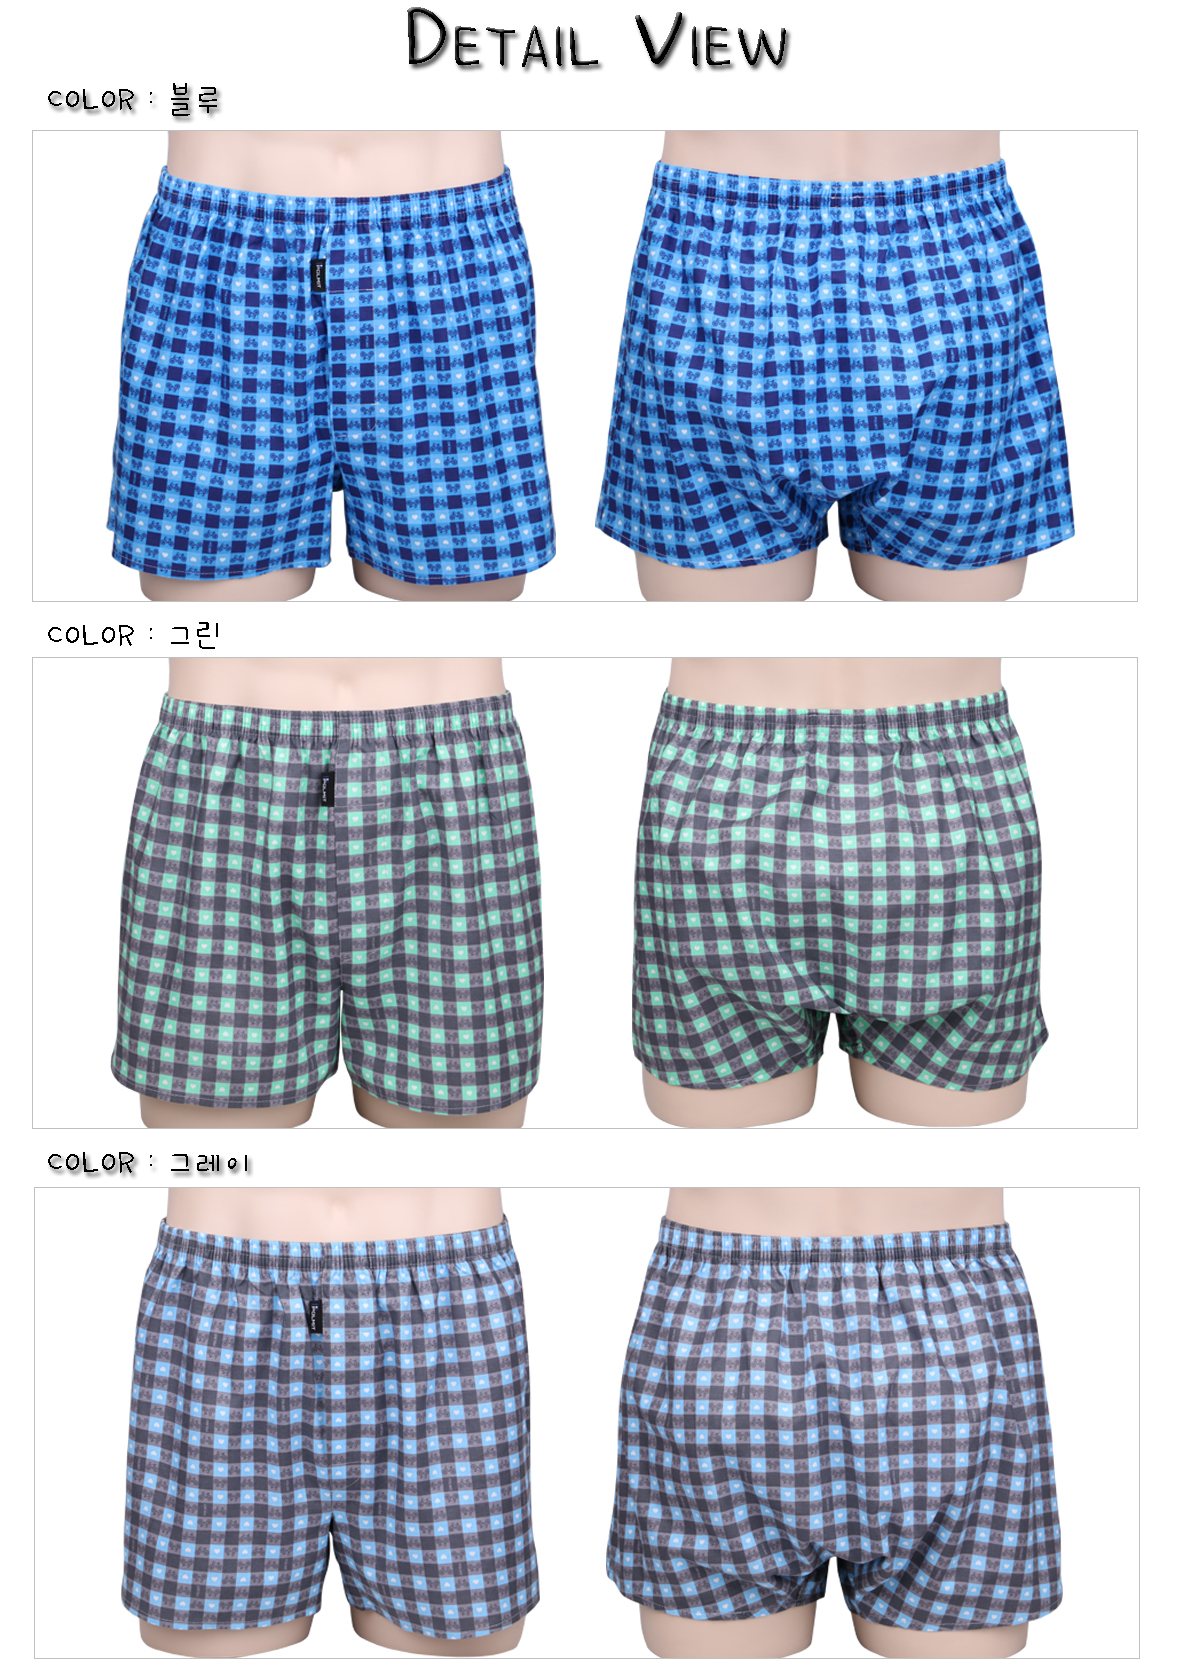 [ POLMIT ] Briefs 3Set For Man Check Color